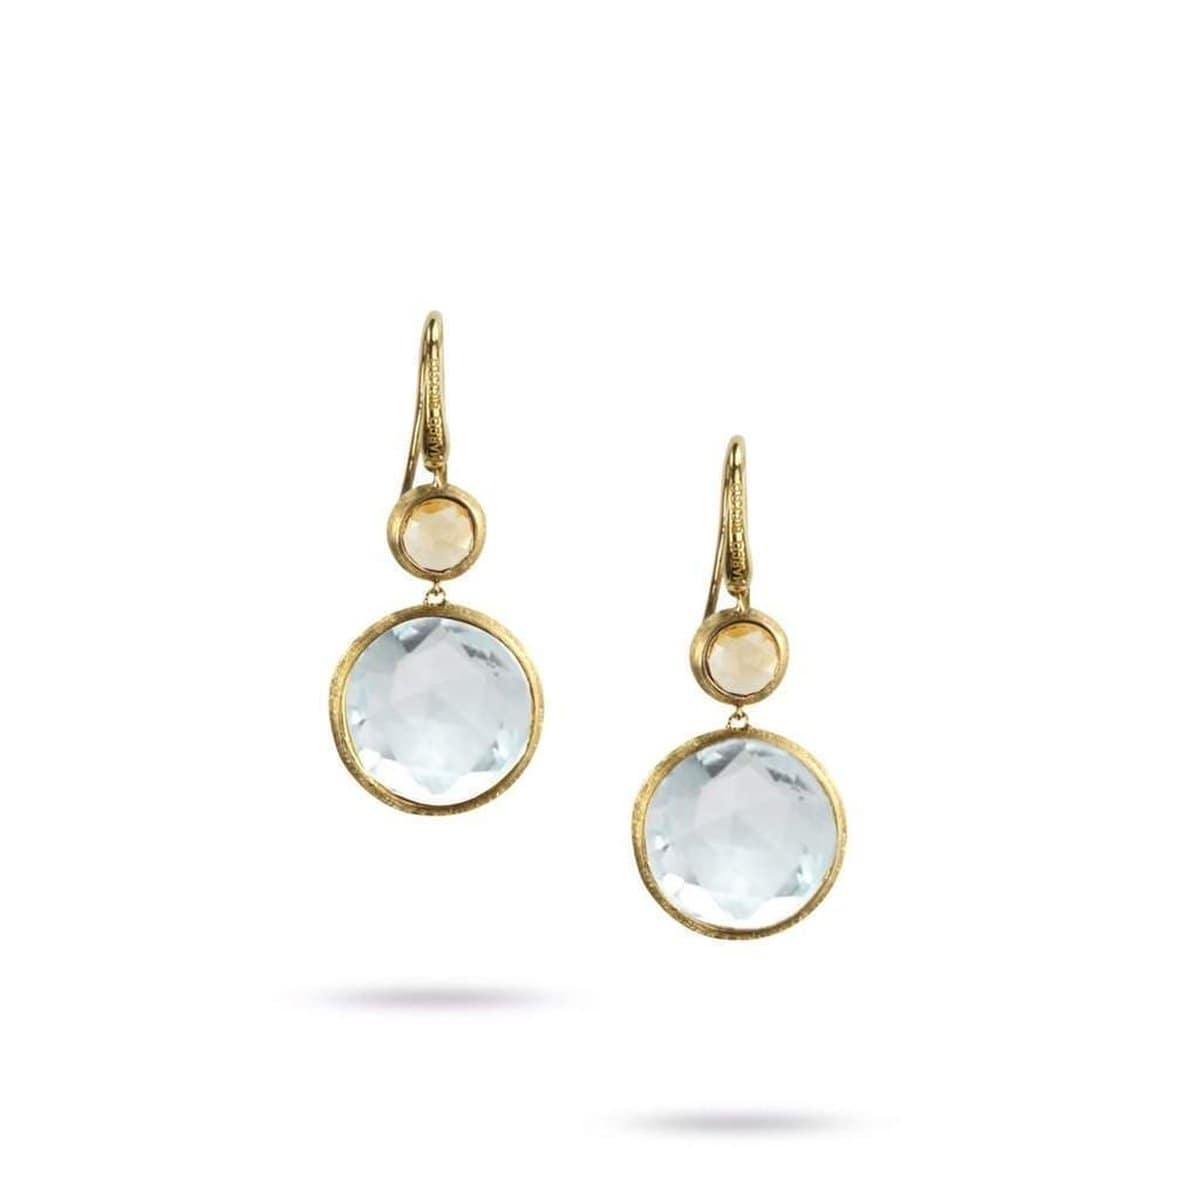 18K Jaipur Blue Topaz Citrine Earrings - OB900 A MIX112 Y-Marco Bicego-Renee Taylor Gallery